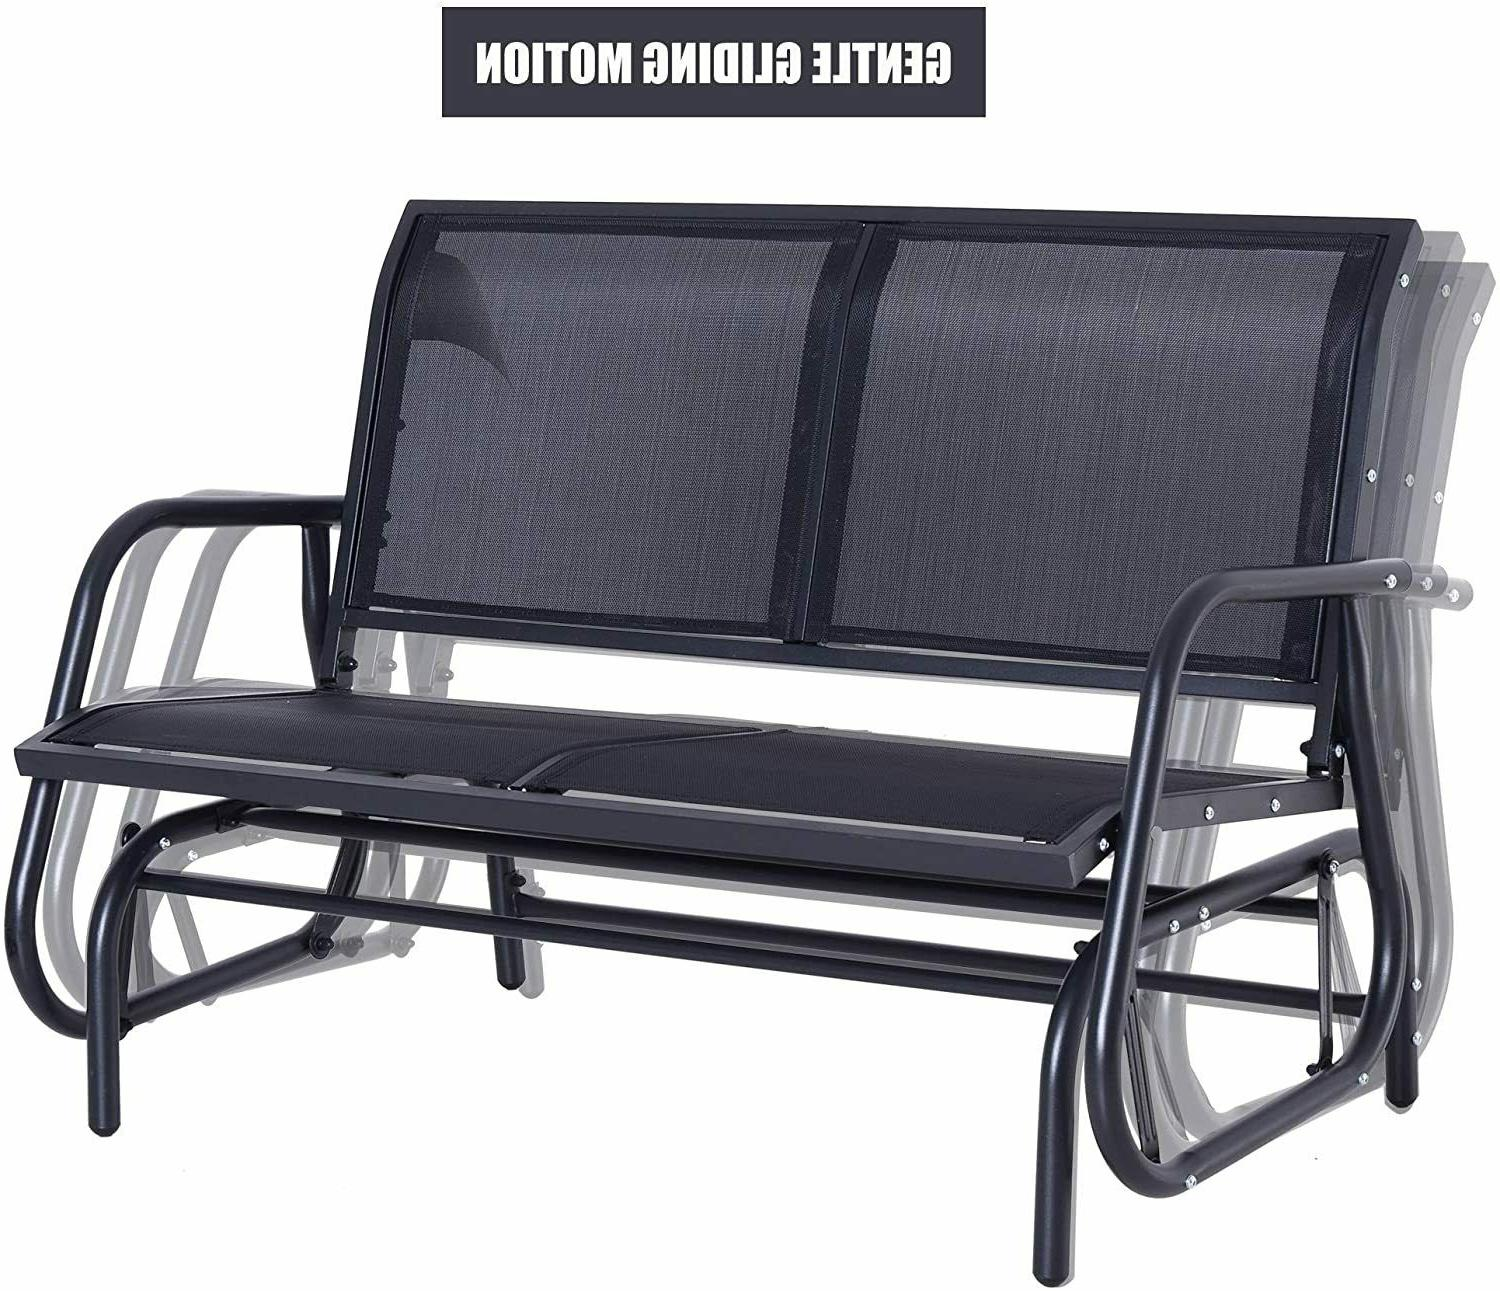 Outsunny Person Glider Bench Porch Seat Swing Chair